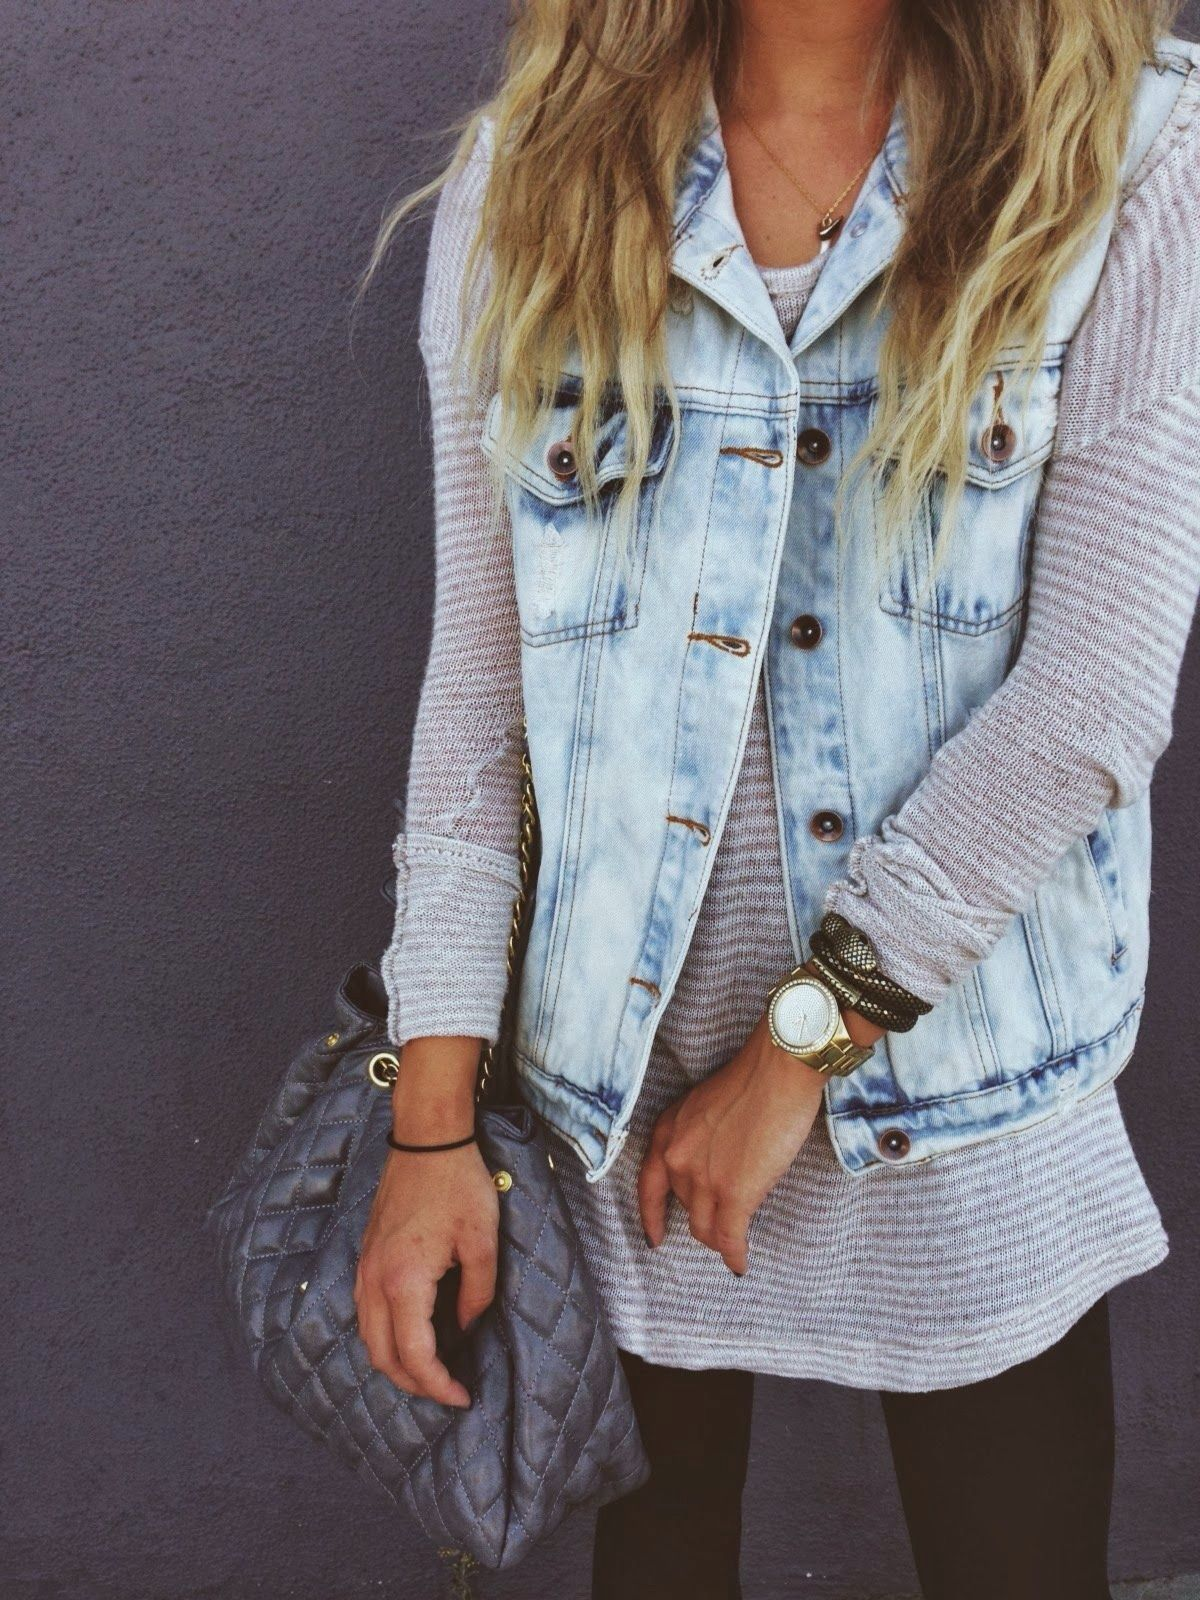 winter fashion teen sweaters - Google Search | THE LOOK ...